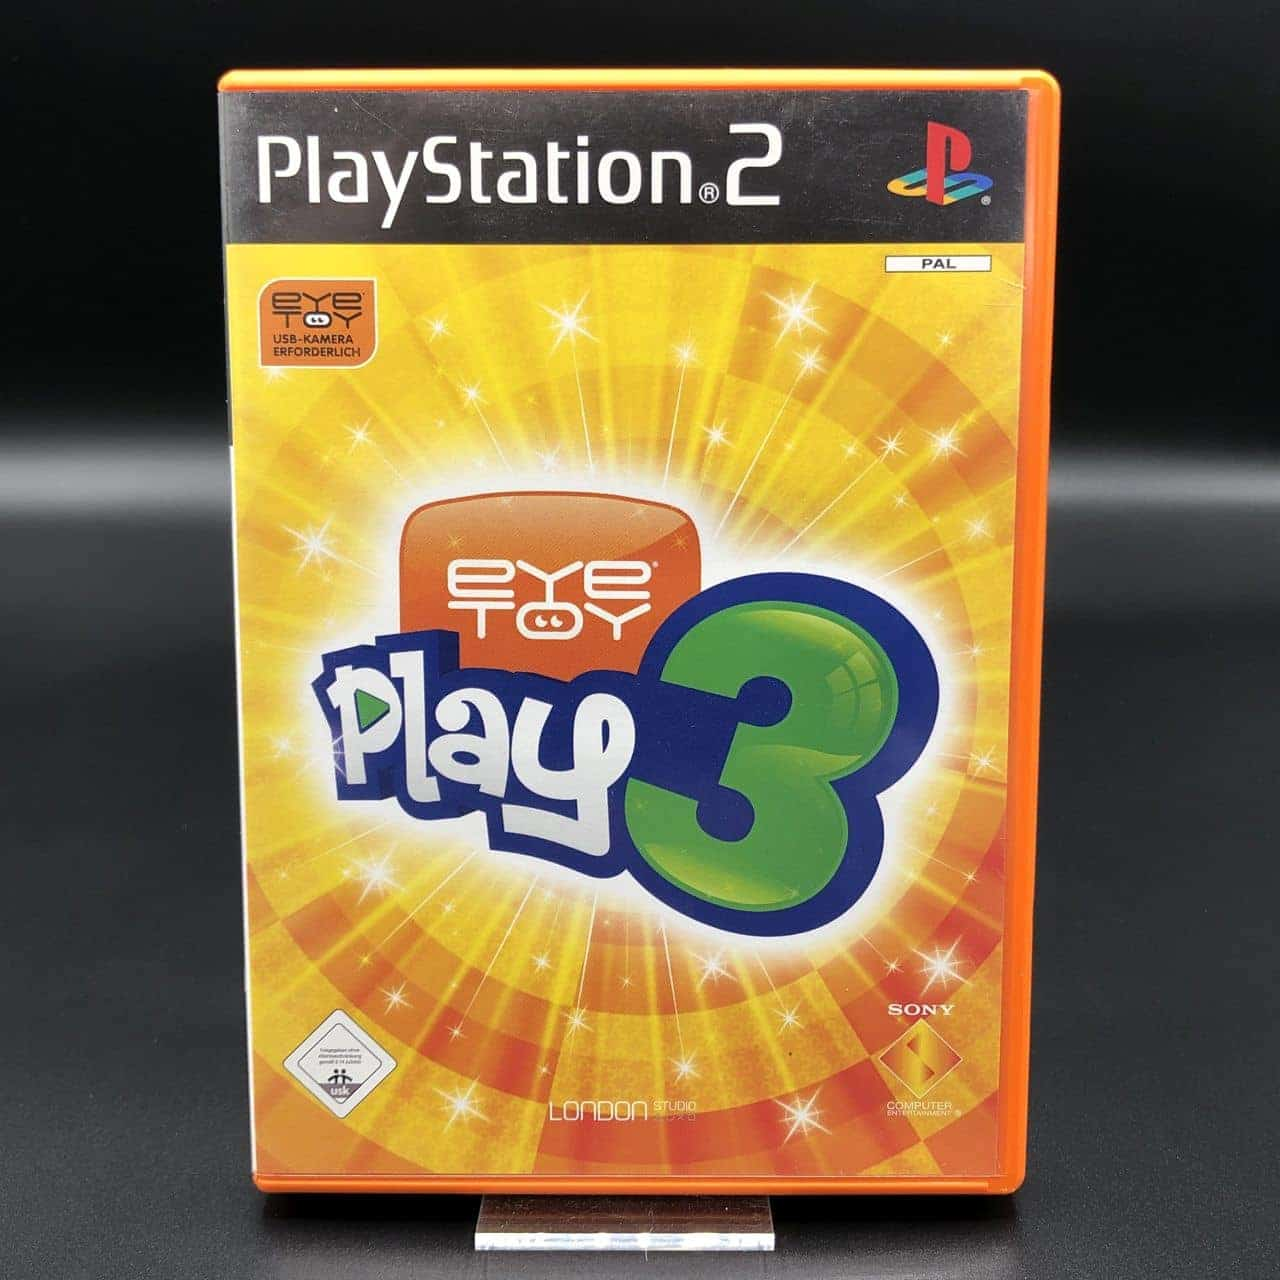 PS2 EyeToy: Play 3 (ohne Anleitung) (Sehr gut) Sony PlayStation 2